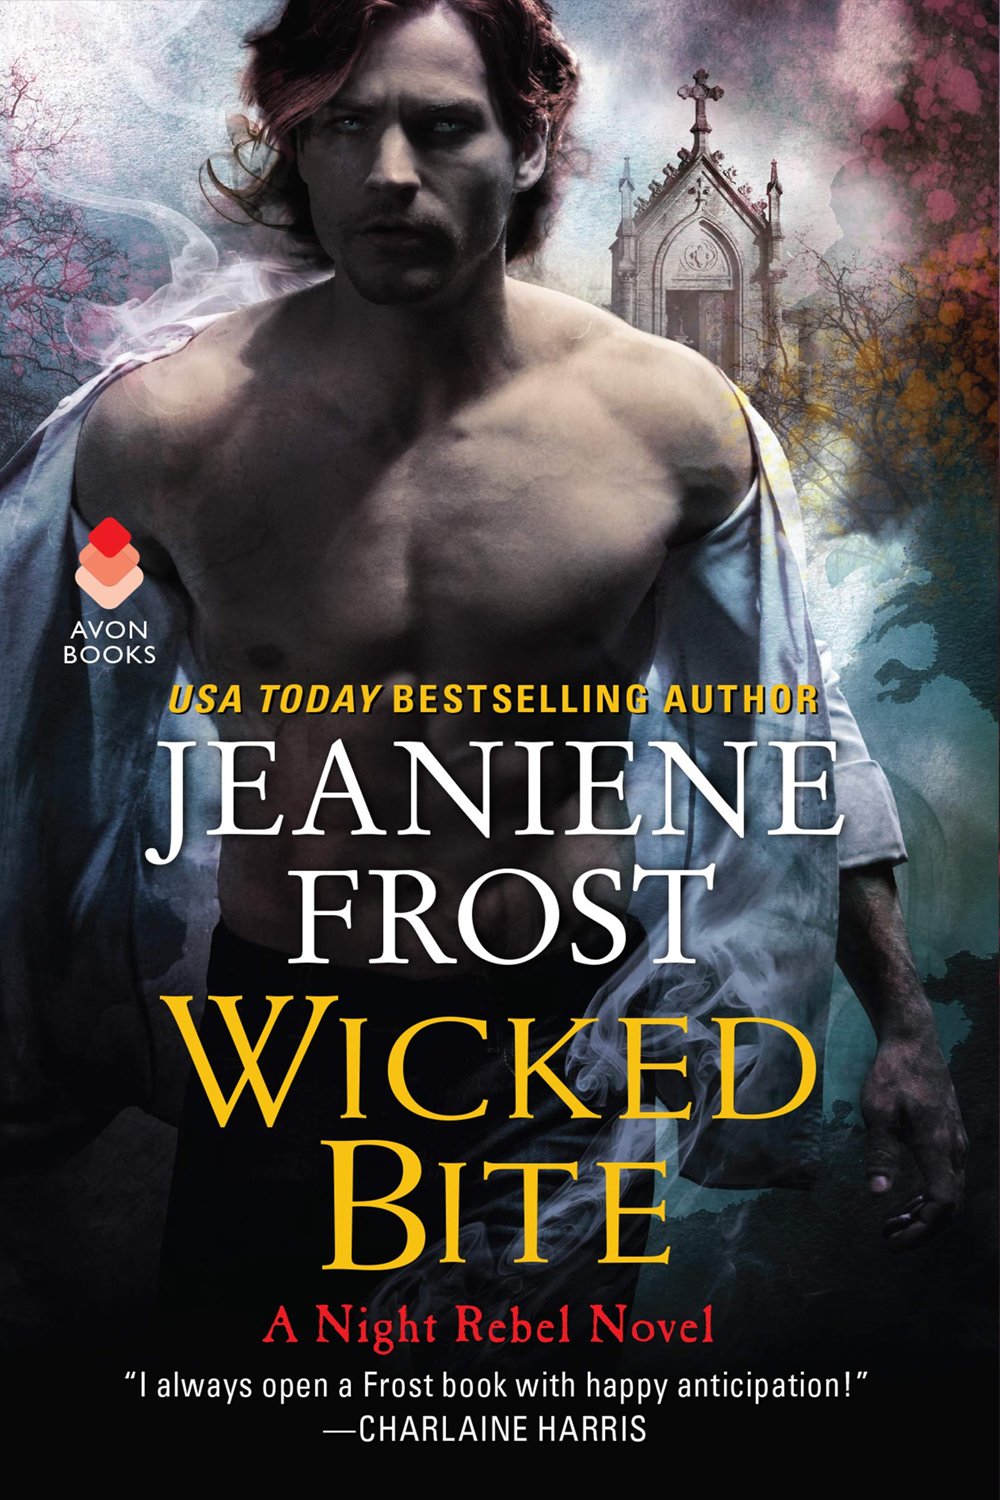 S1 E30 Wicked Bite by Jeaniene Frost